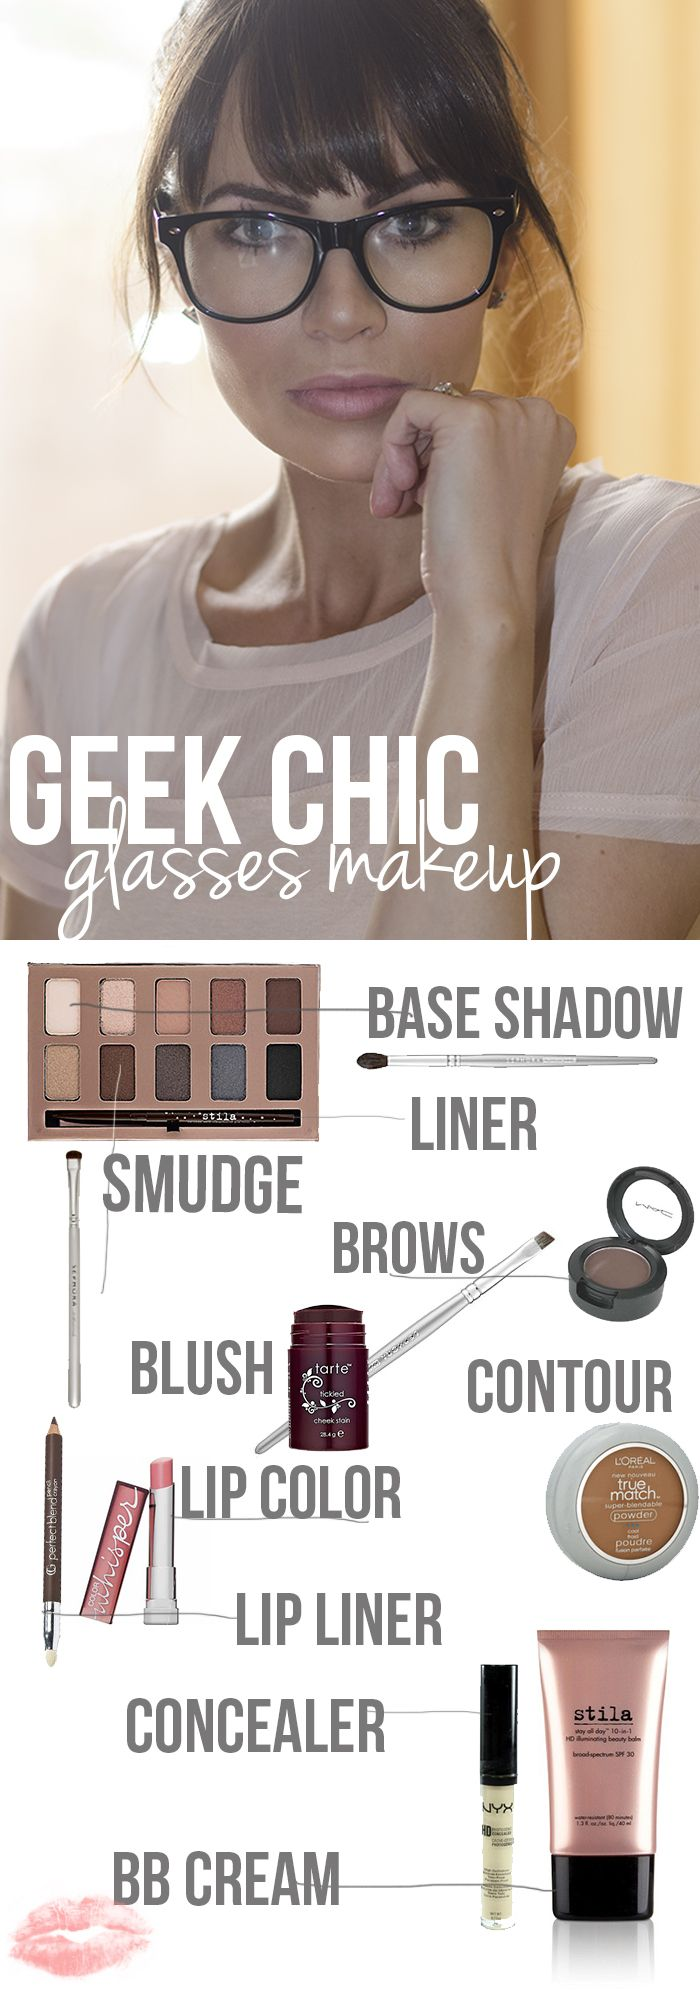 Makeup for Girls with Glasses